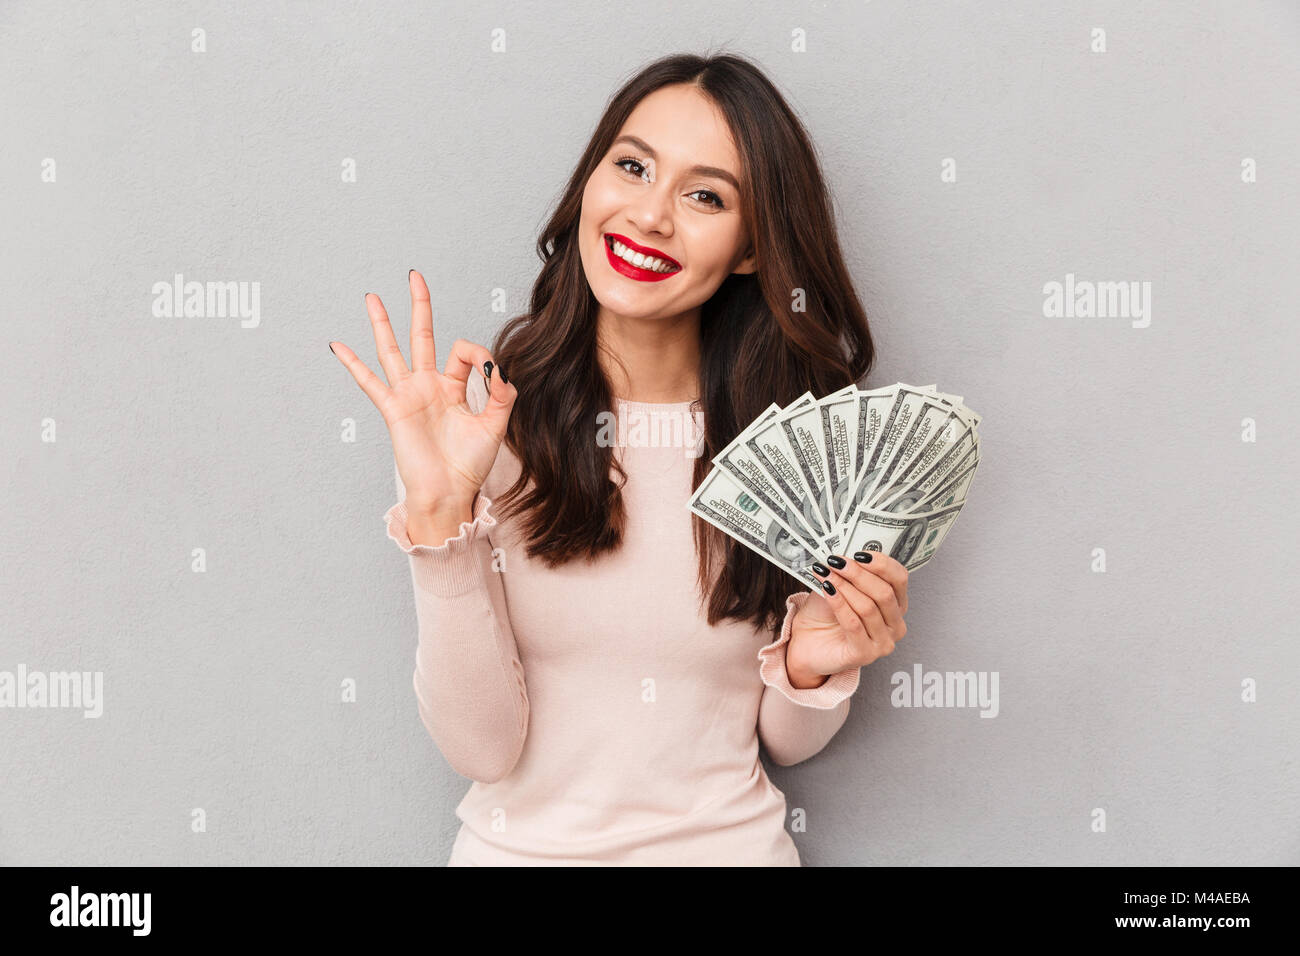 Image of lucky brunette female holding fan of 100 dollar bills being excited to win cash prize showing OK sign, - Stock Image